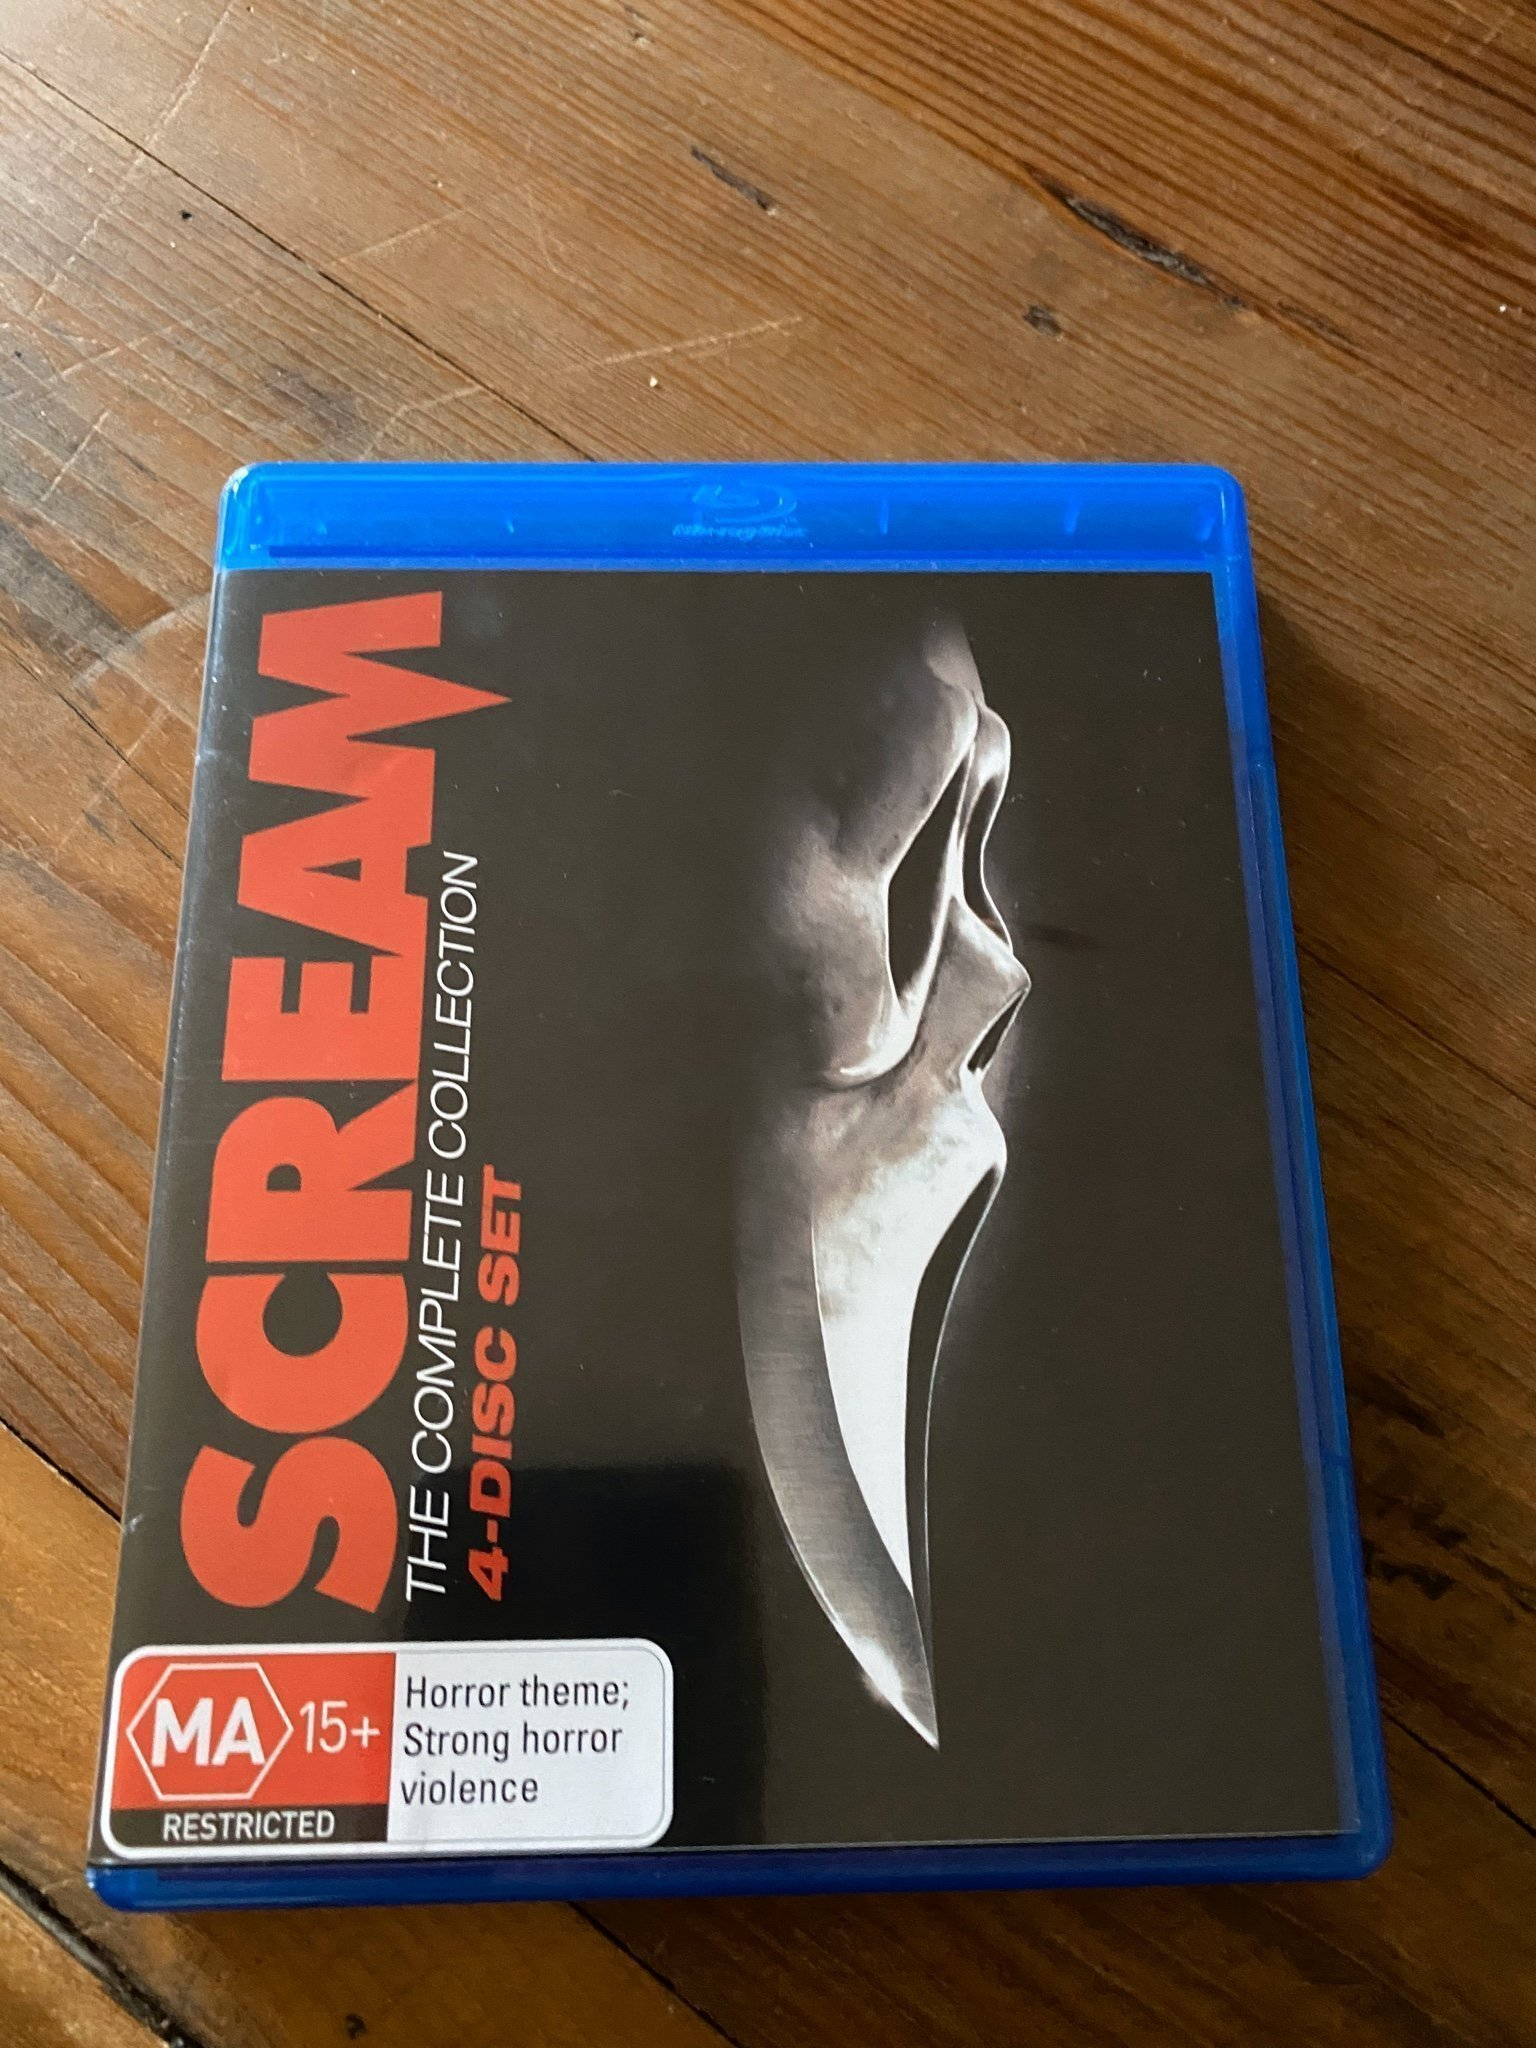 Scream 1-4 Bluray Box